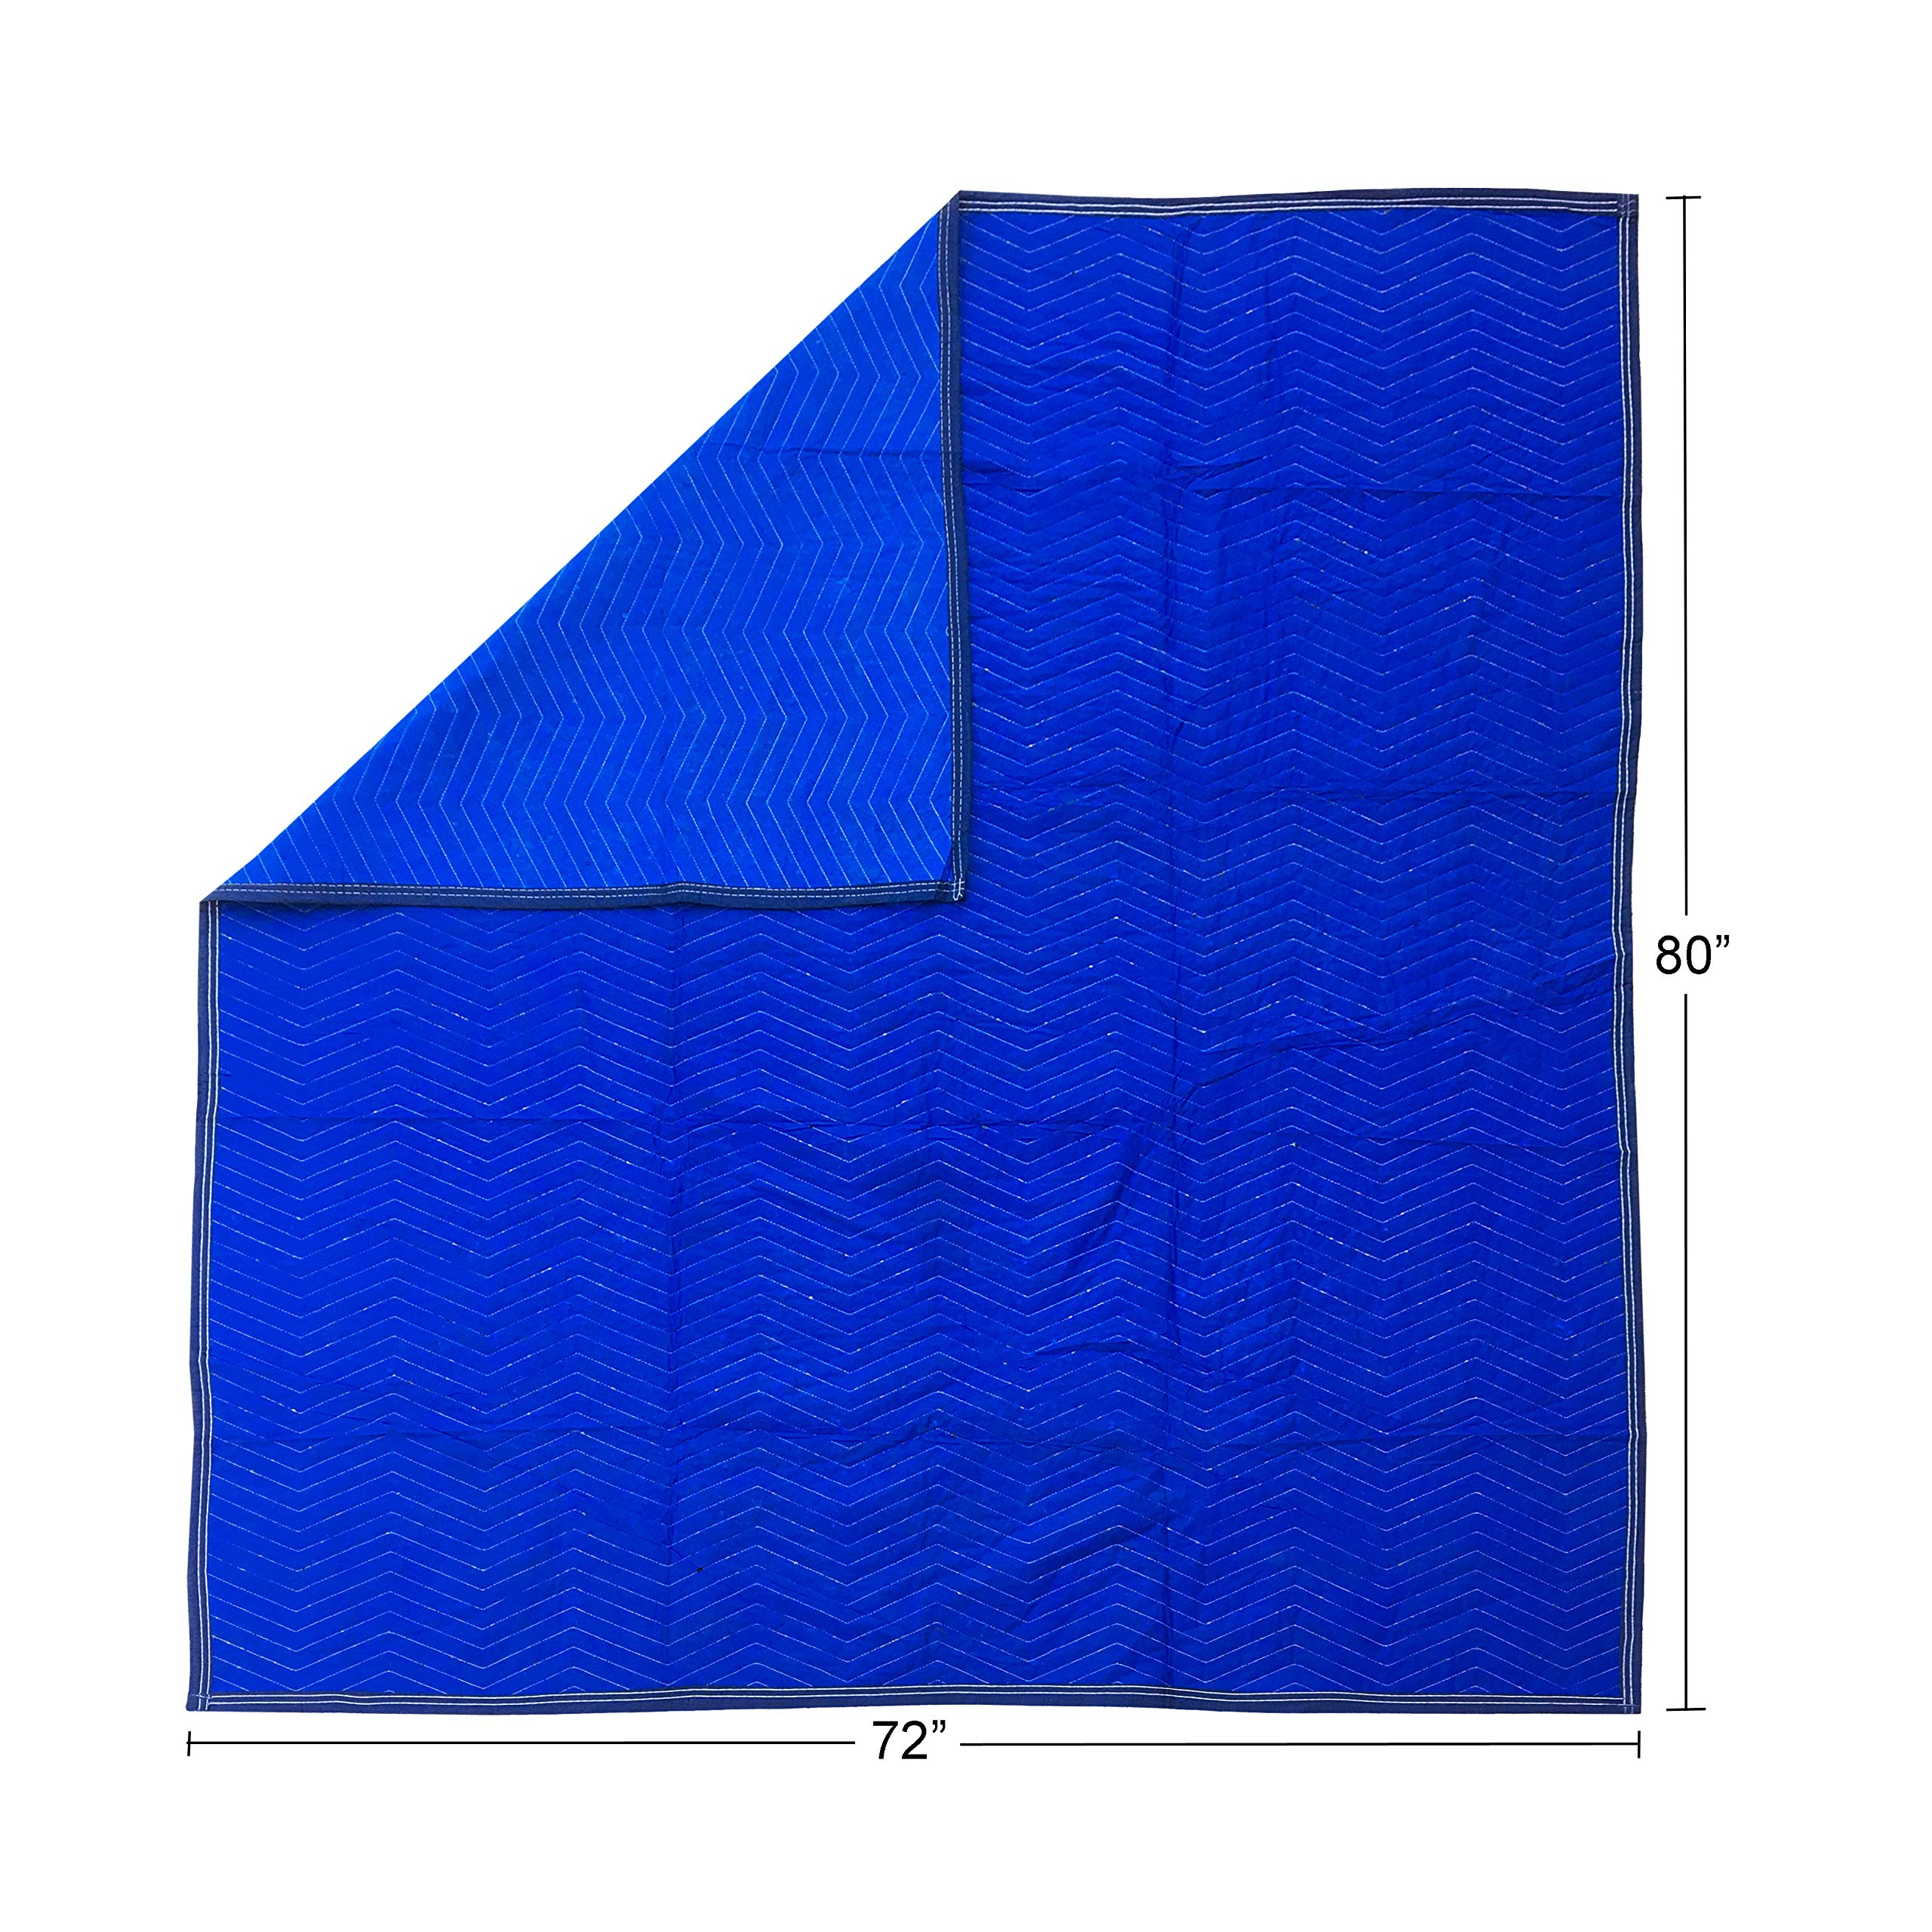 36 Economy Moving Blanket 72x80'' 43# Quilted Moving Blankets by Uboxes (Image #5)